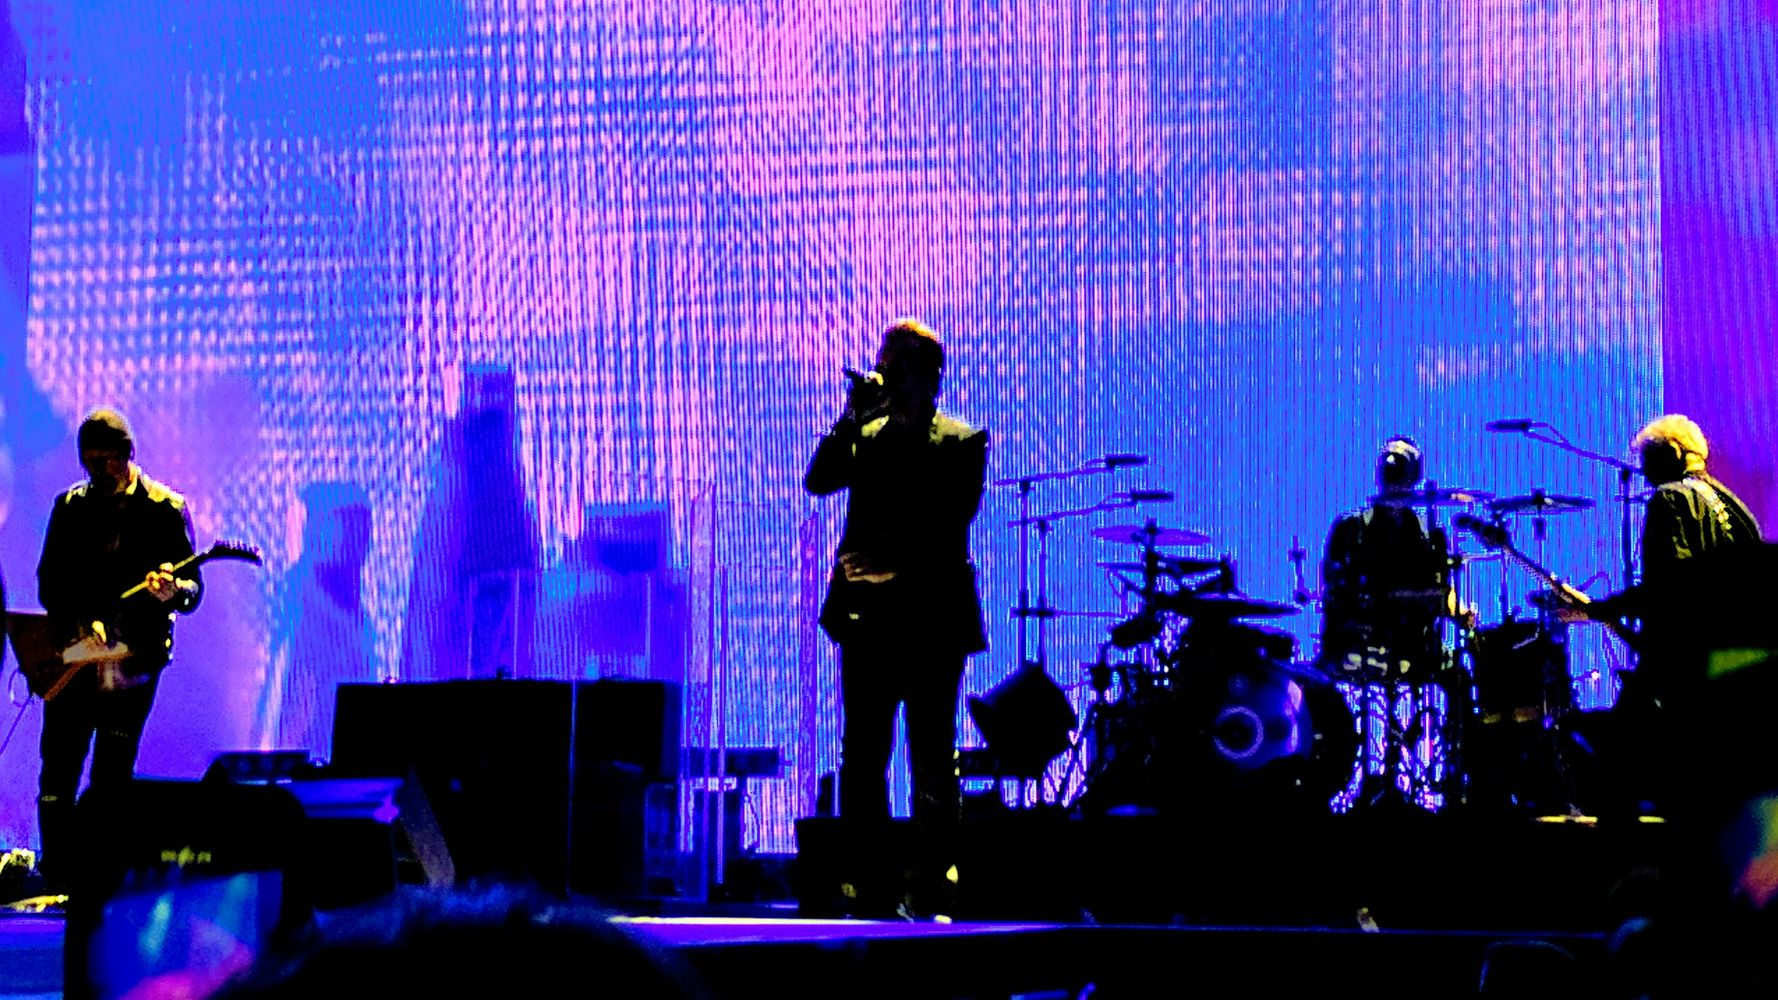 What No One Else Will Tell You About the New U2 Album | HuffPost